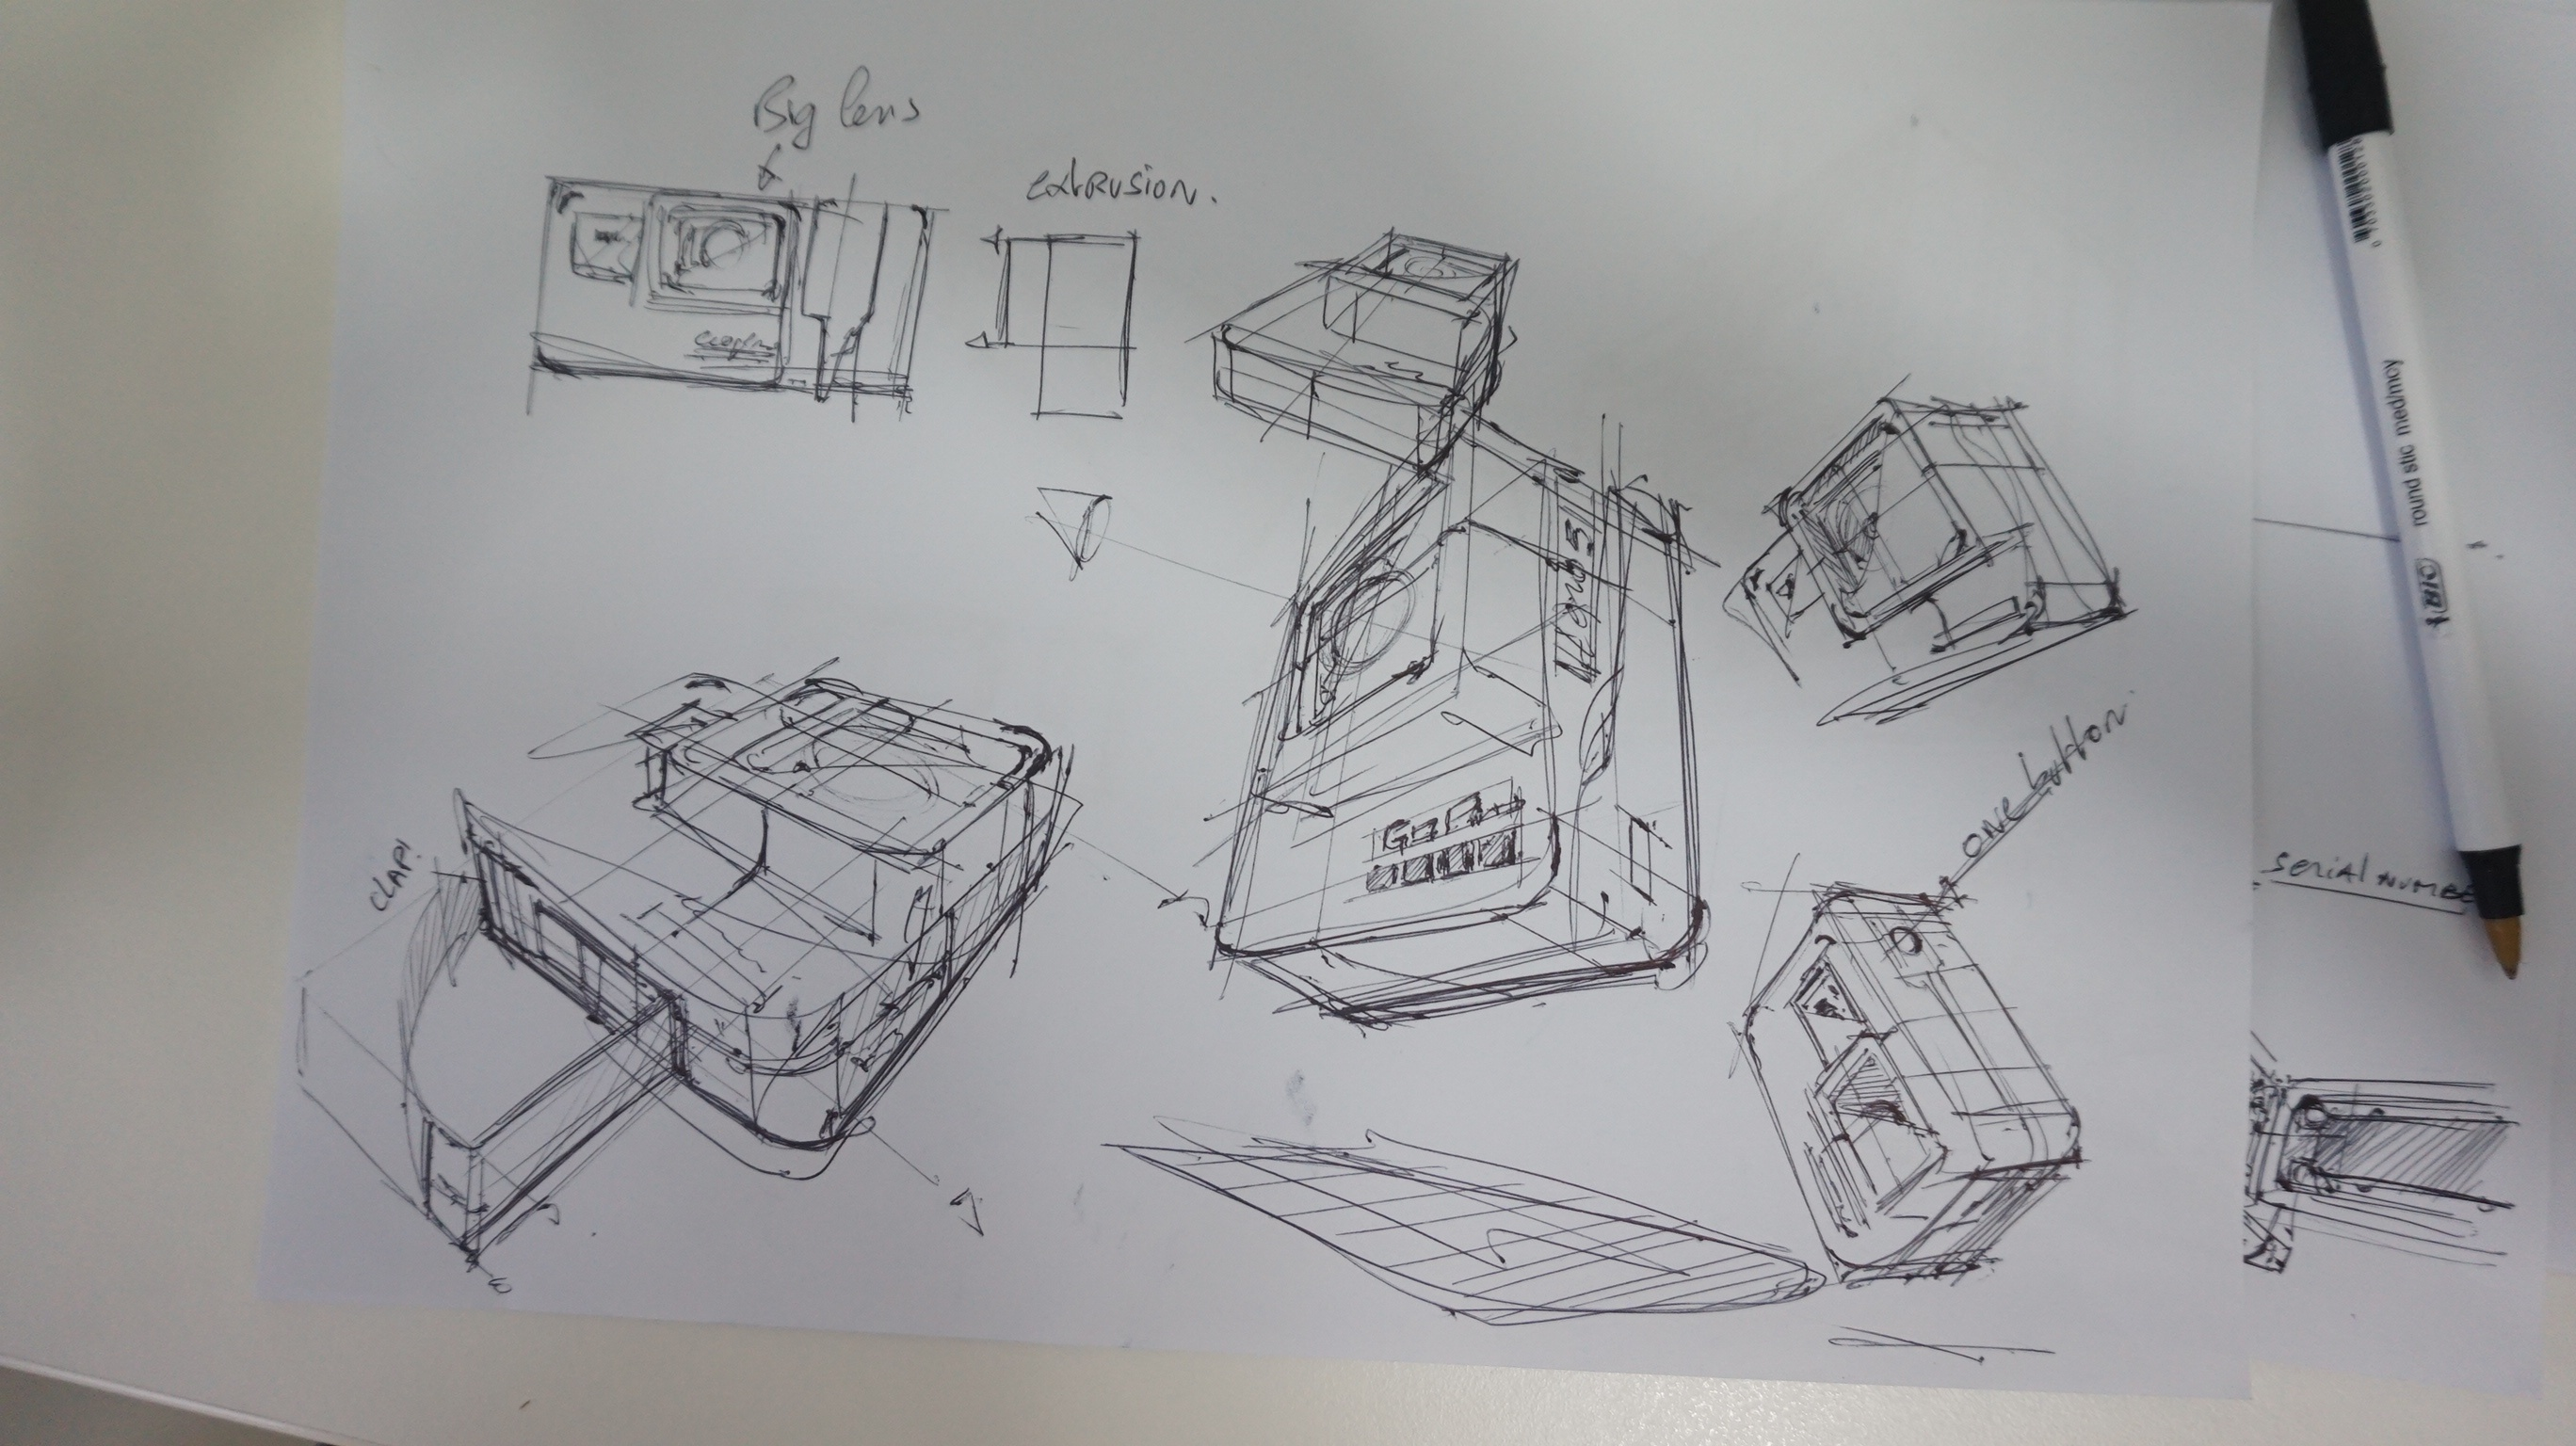 c Ugly Doodle Sketching a Go Pro - product design sketching